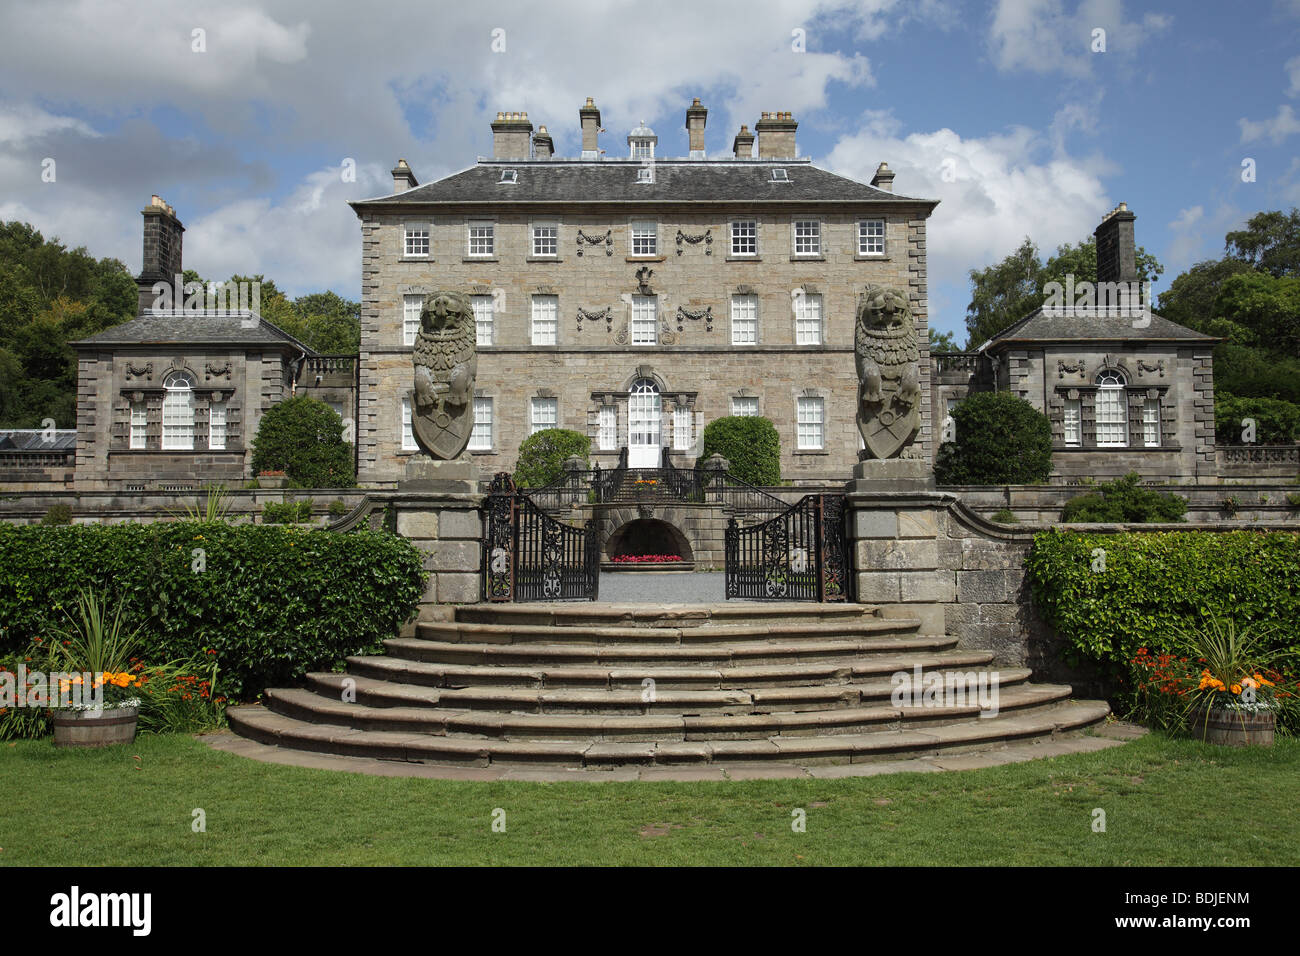 Pollok House run by the National Trust For Scotland in Pollok Country Park, Glasgow, Scotland, UK - Stock Image